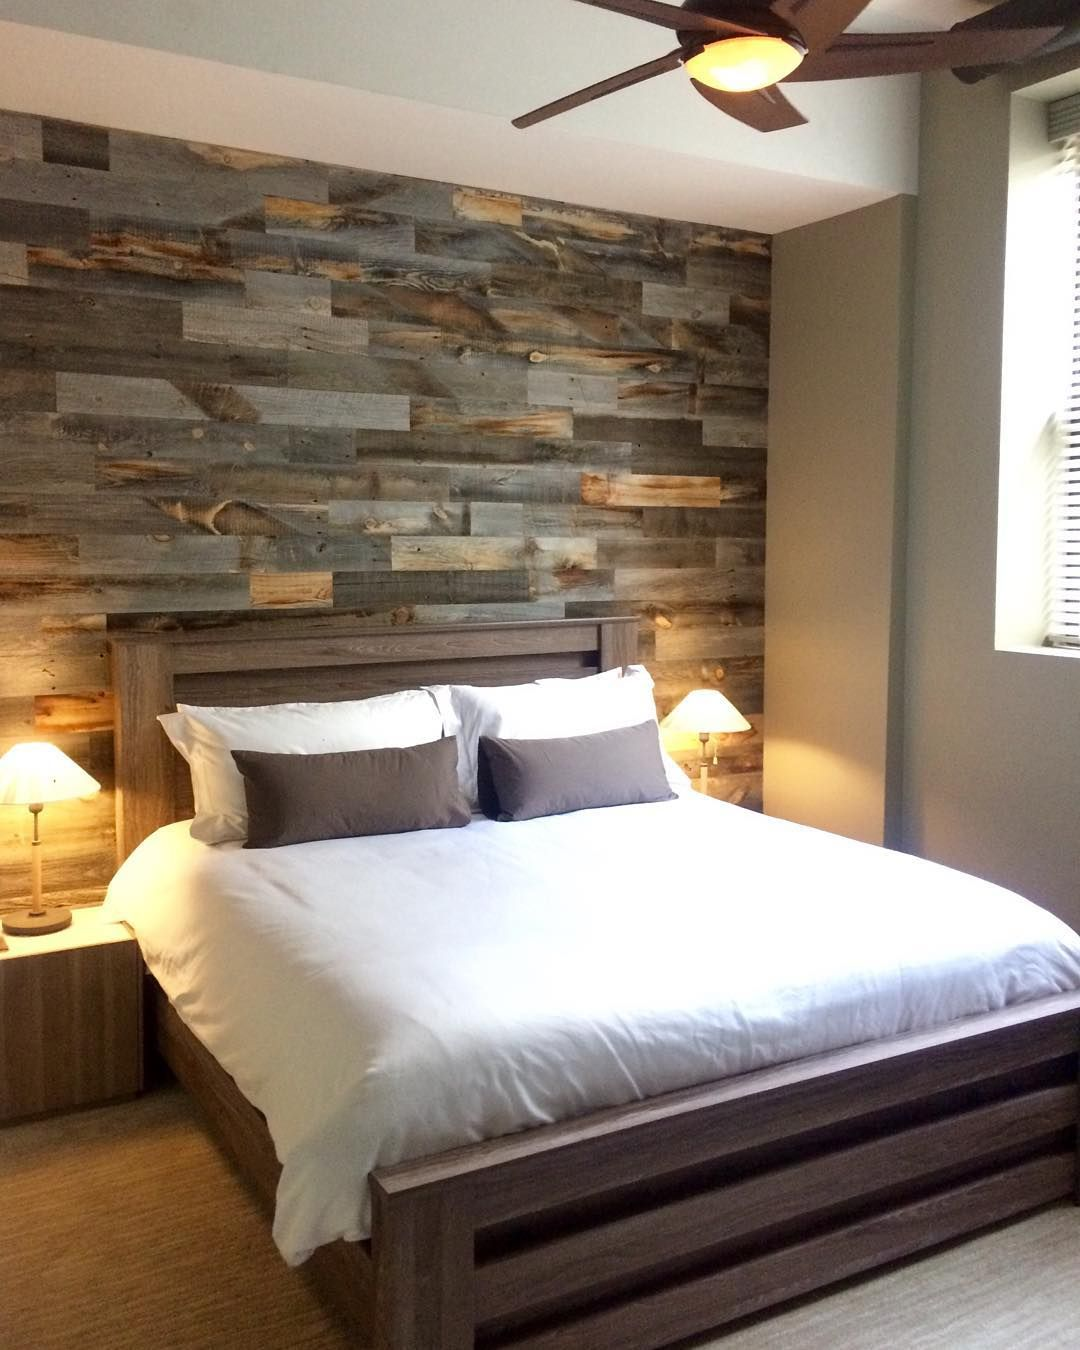 Diy Easy Peel And Stick Wood Wall Decor Home Bedroom Wall